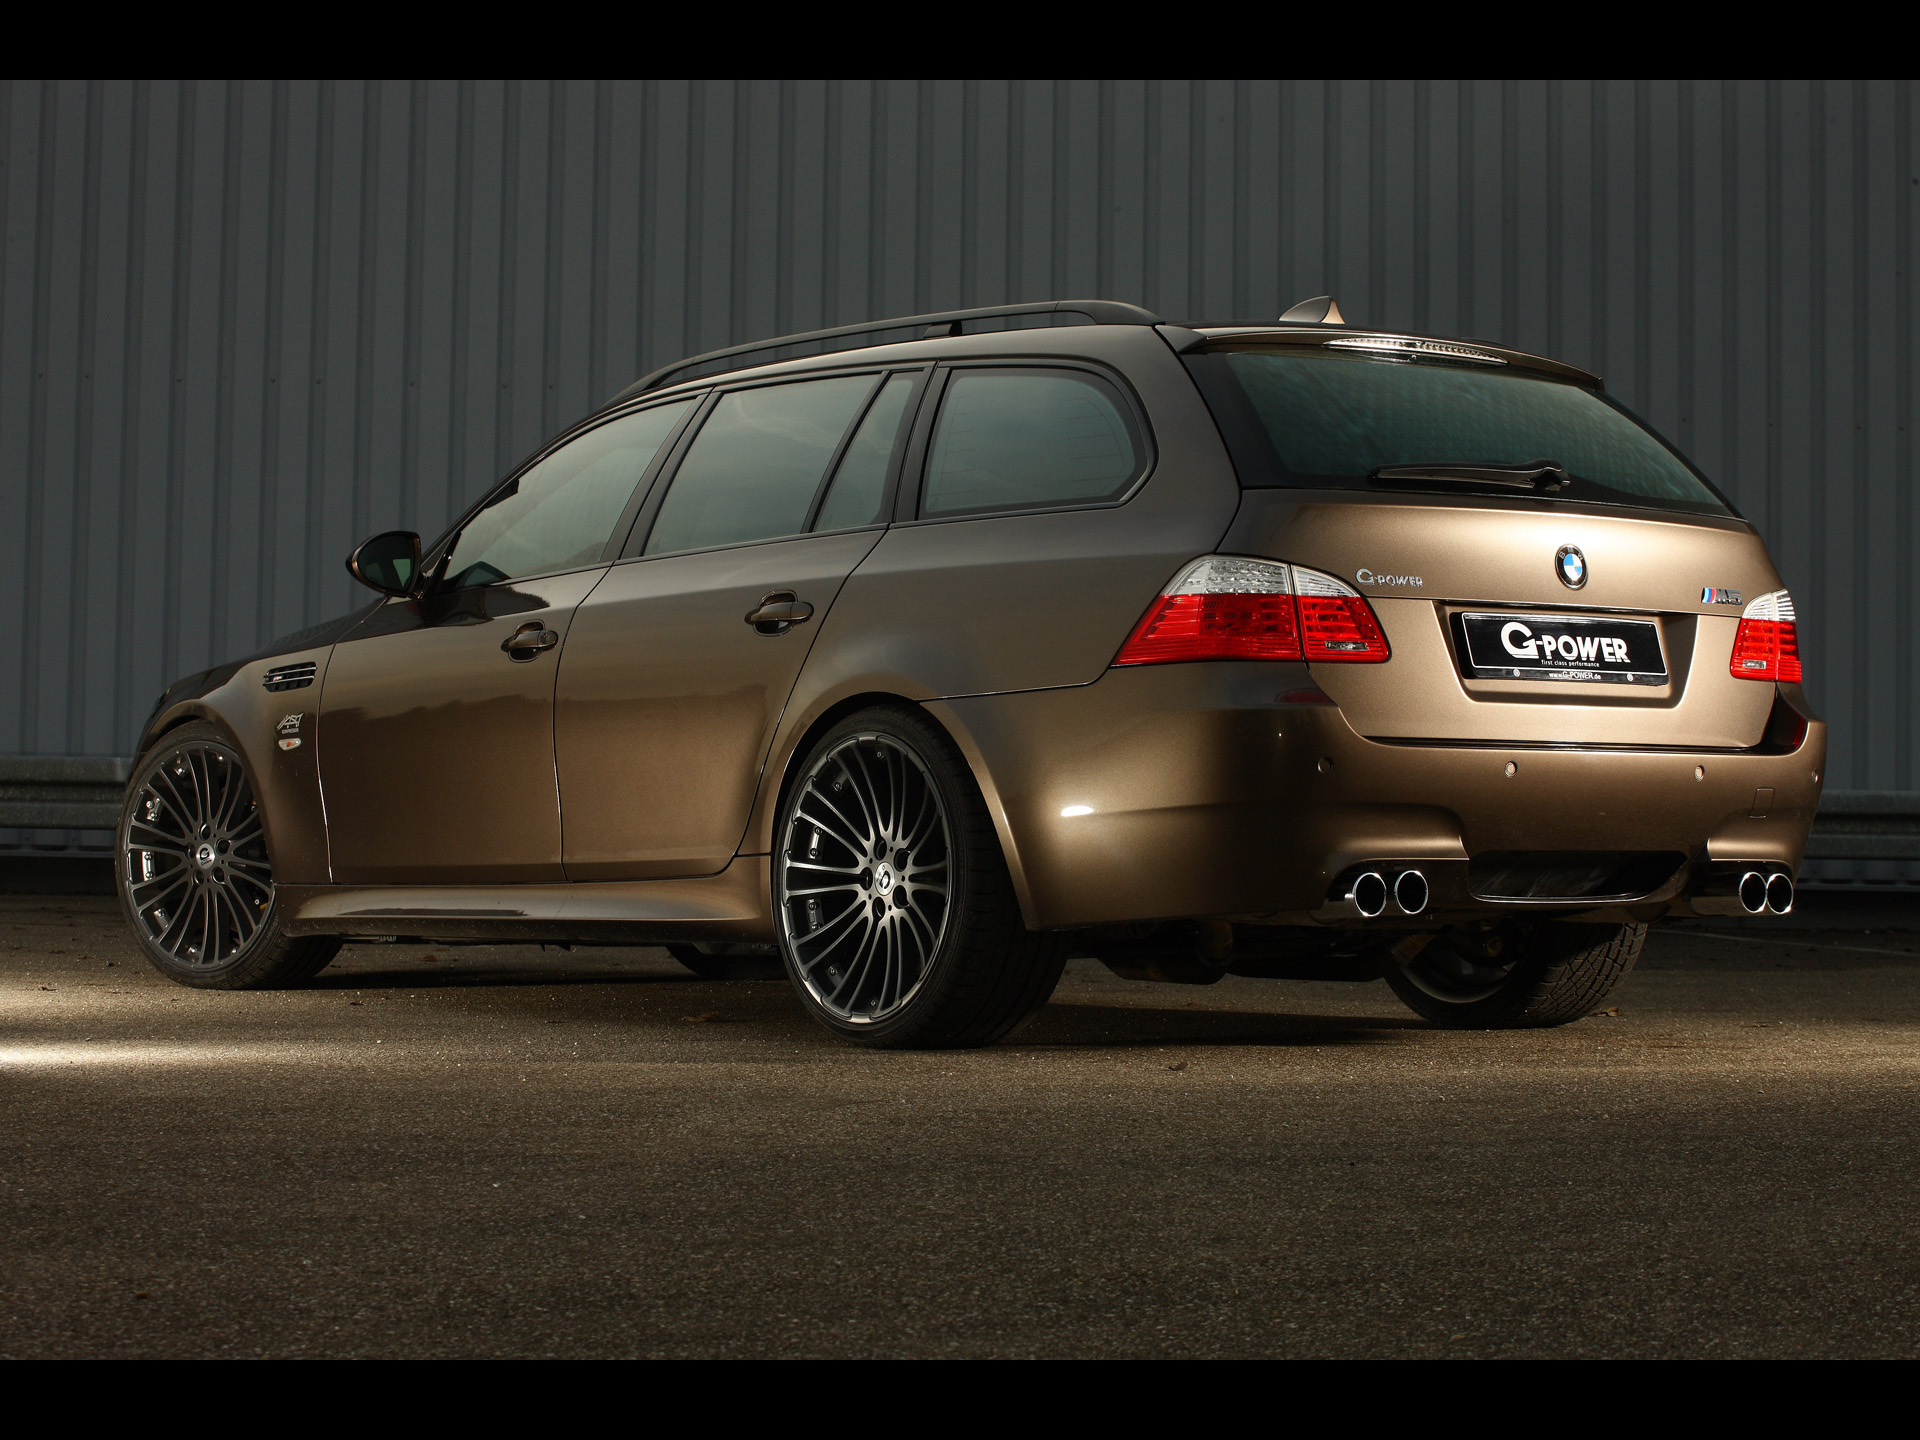 bmw images bmw m5 e61 hurricane rs touring by g power hd. Black Bedroom Furniture Sets. Home Design Ideas